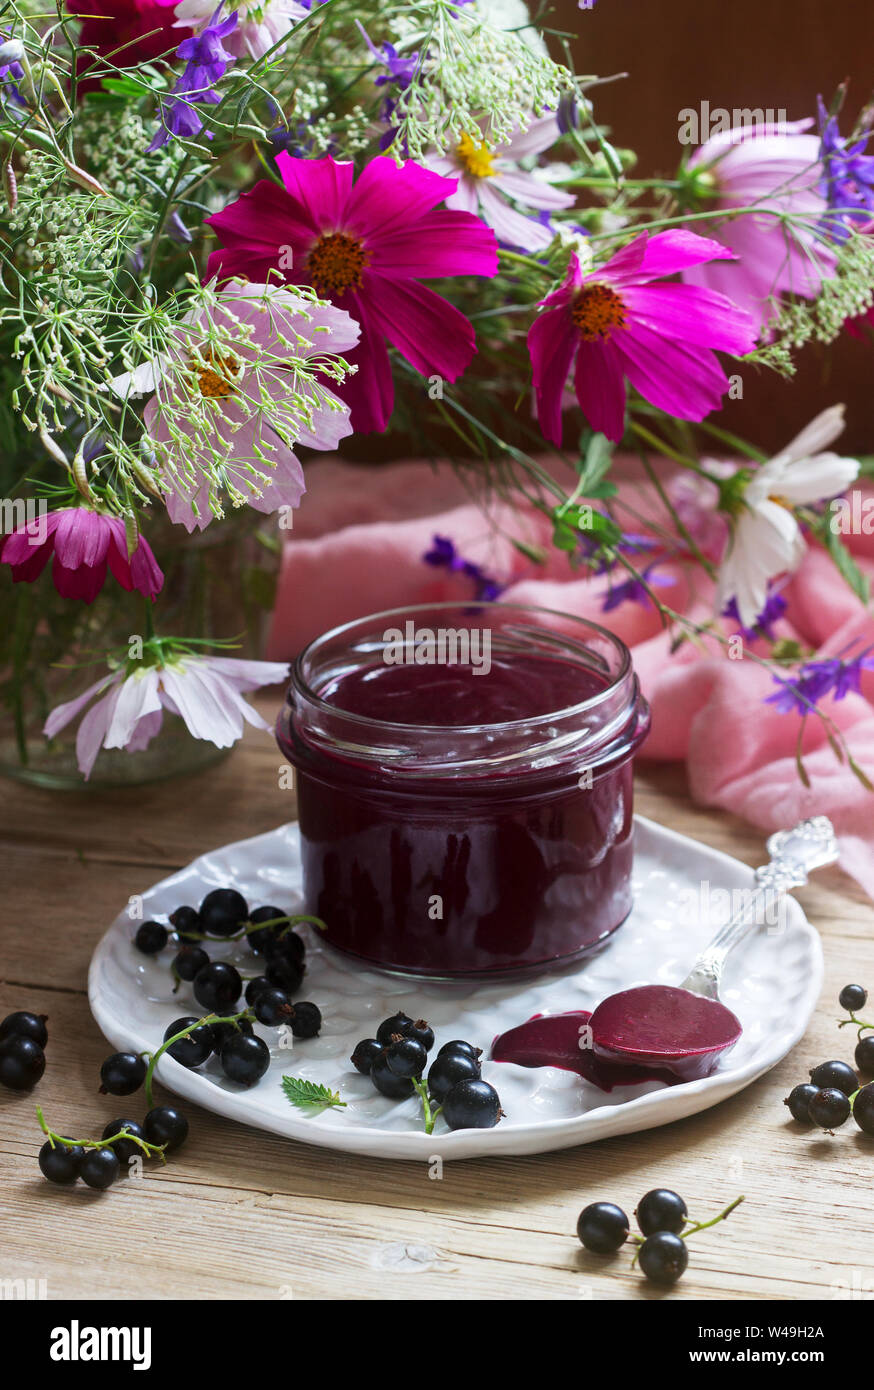 Black currant custard, currants and a bouquet of wild flowers on a wooden background. Rustic style. Stock Photo